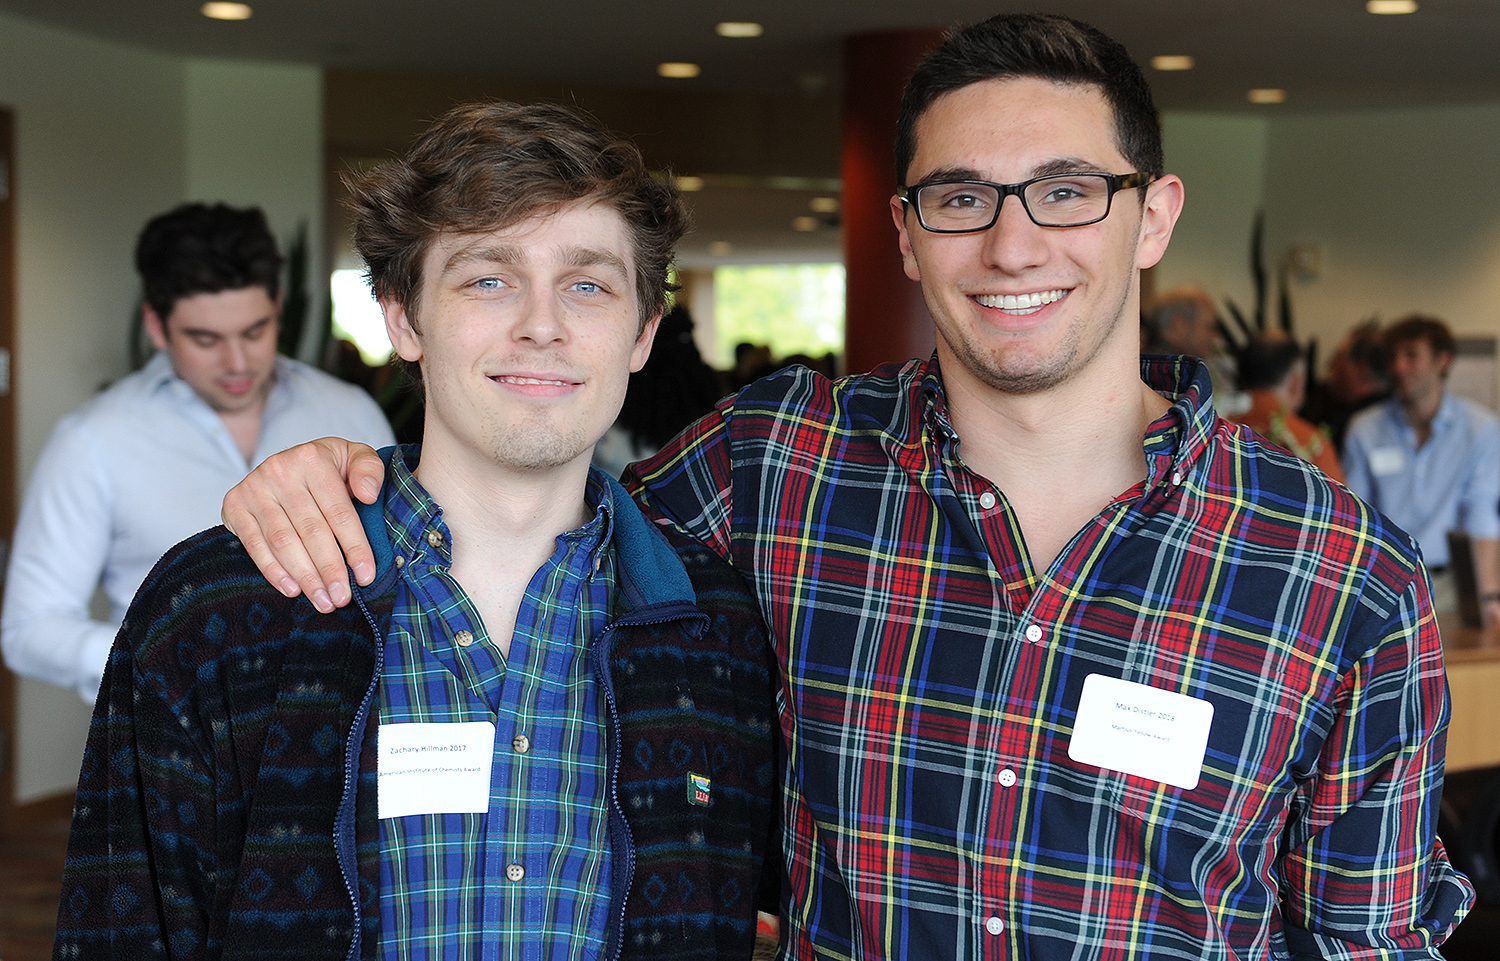 Zachary Hillman '17 received the American Institute of Chemists Award and Max Distler '18 received the Martius Yellow Award for excellence in organic synthesis research.